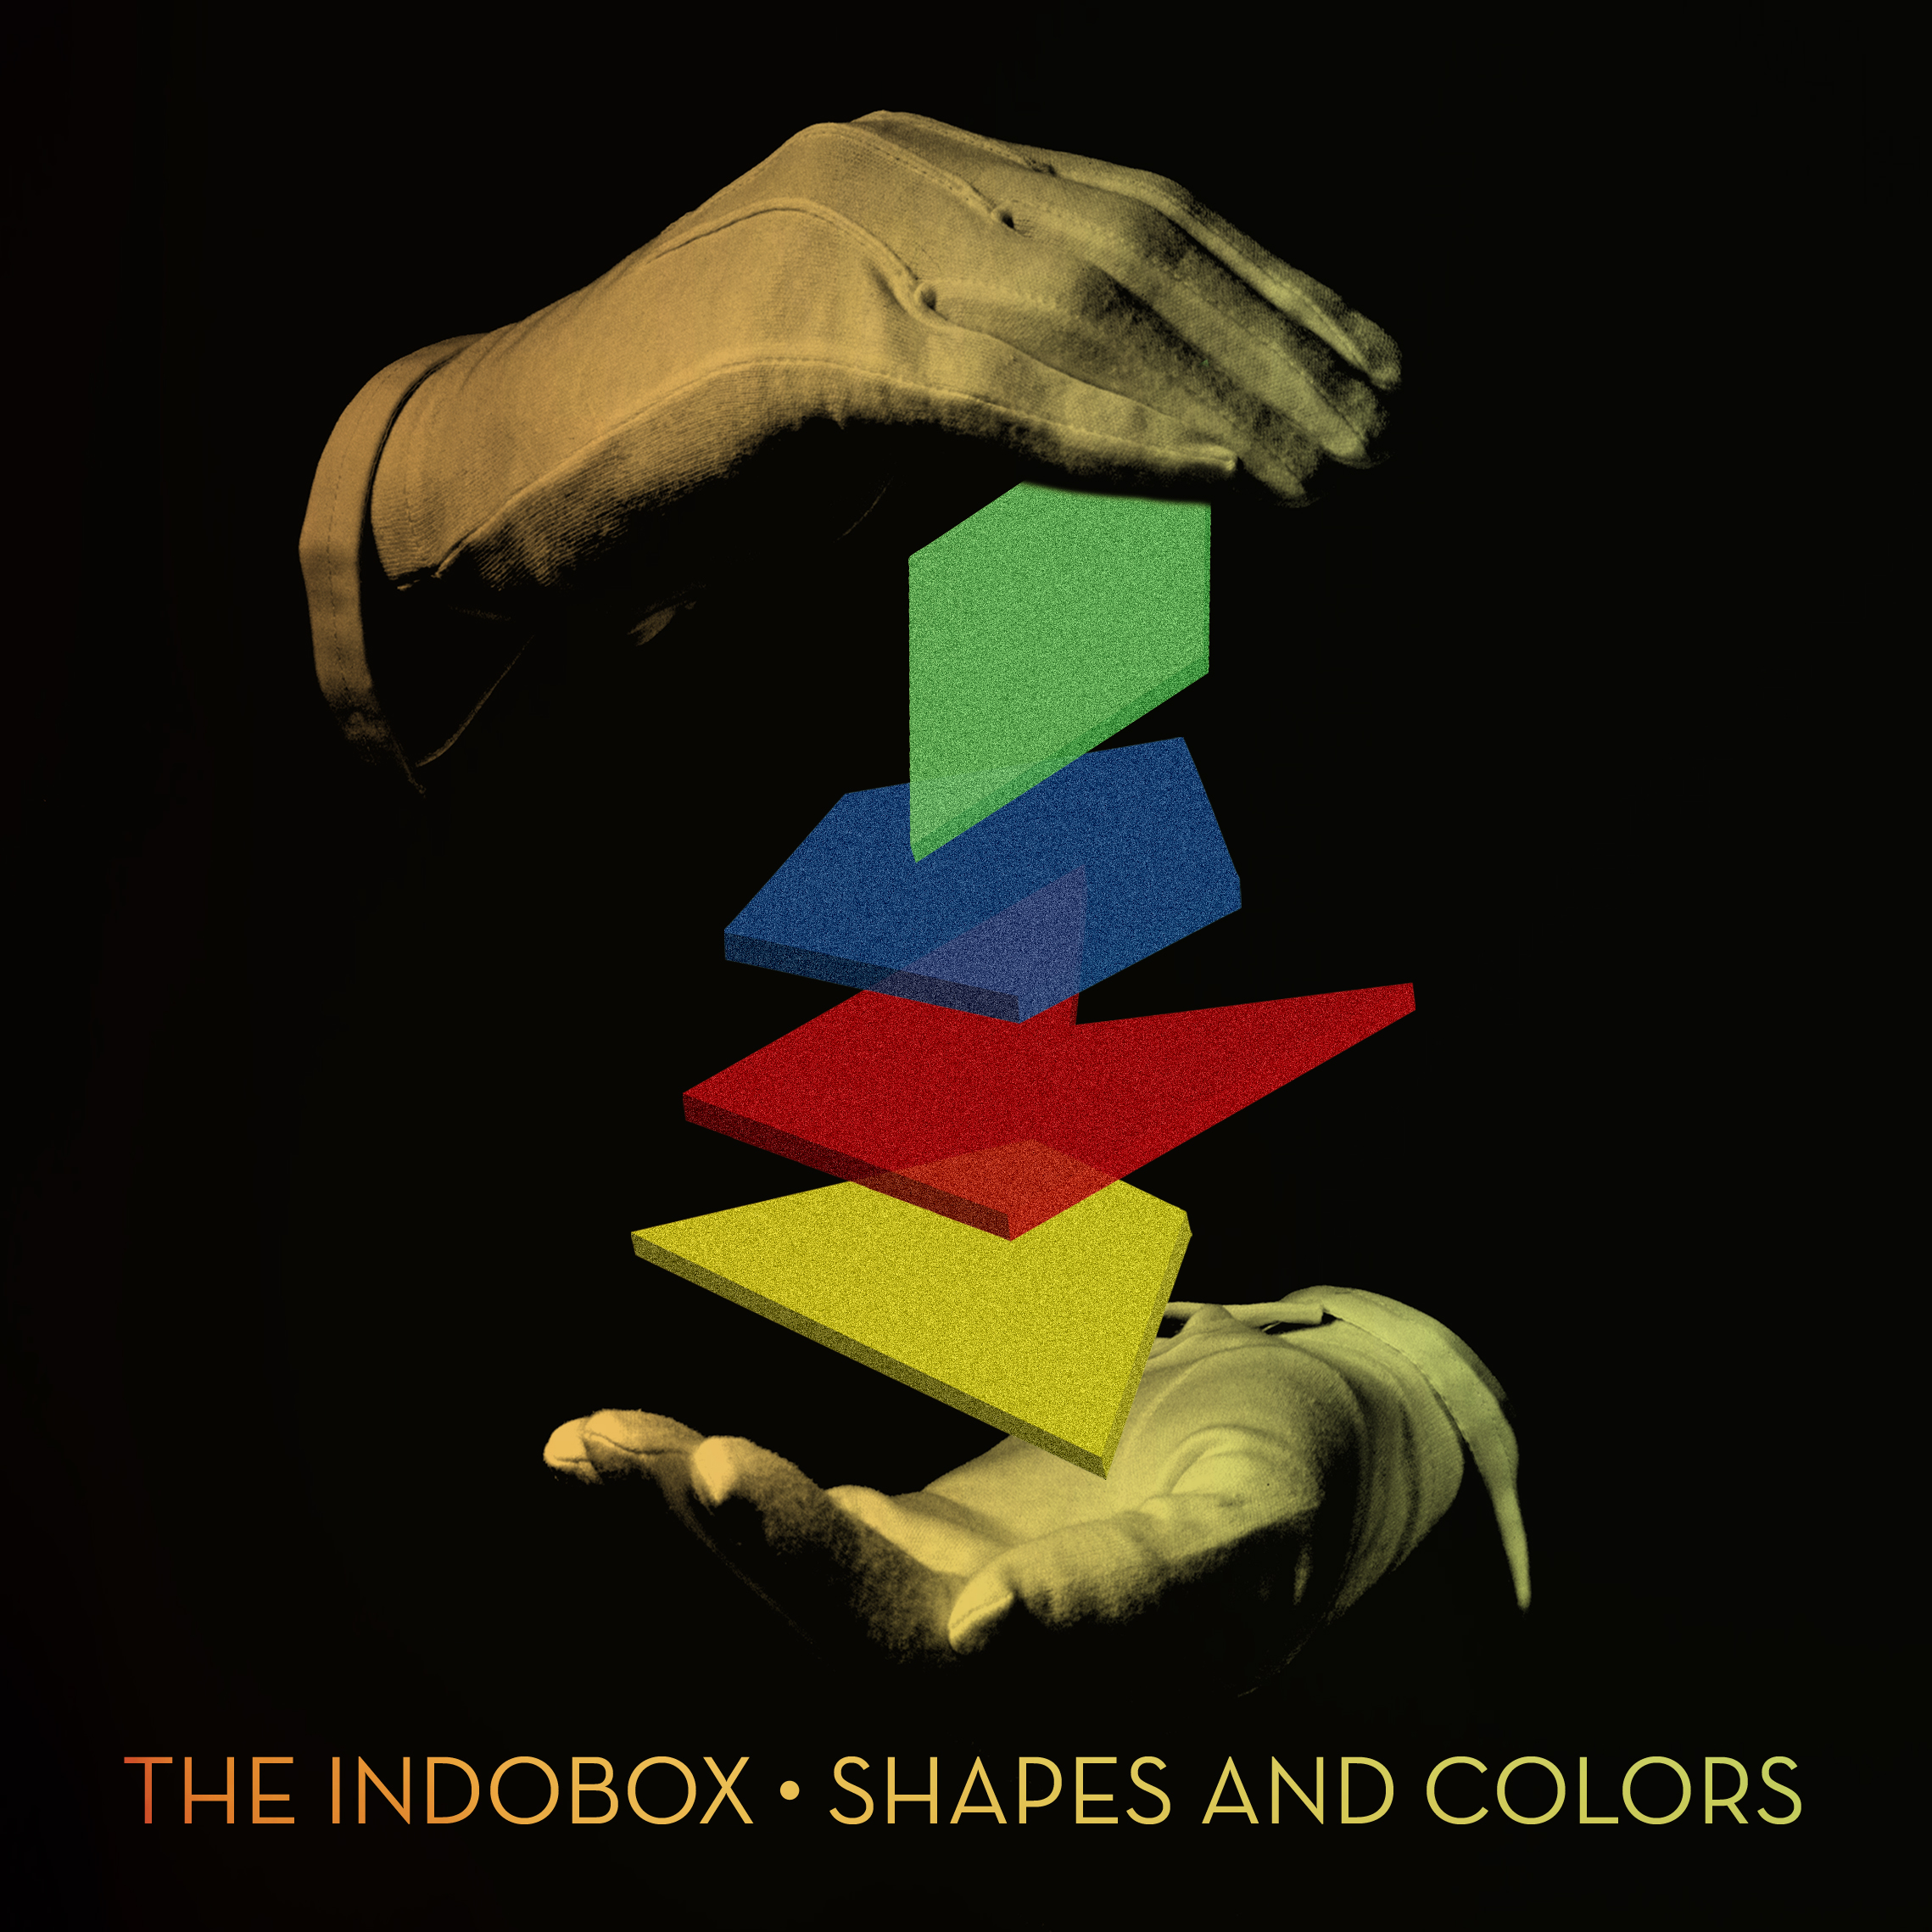 The Indobox Shapes and Colors_A2-1.jpg